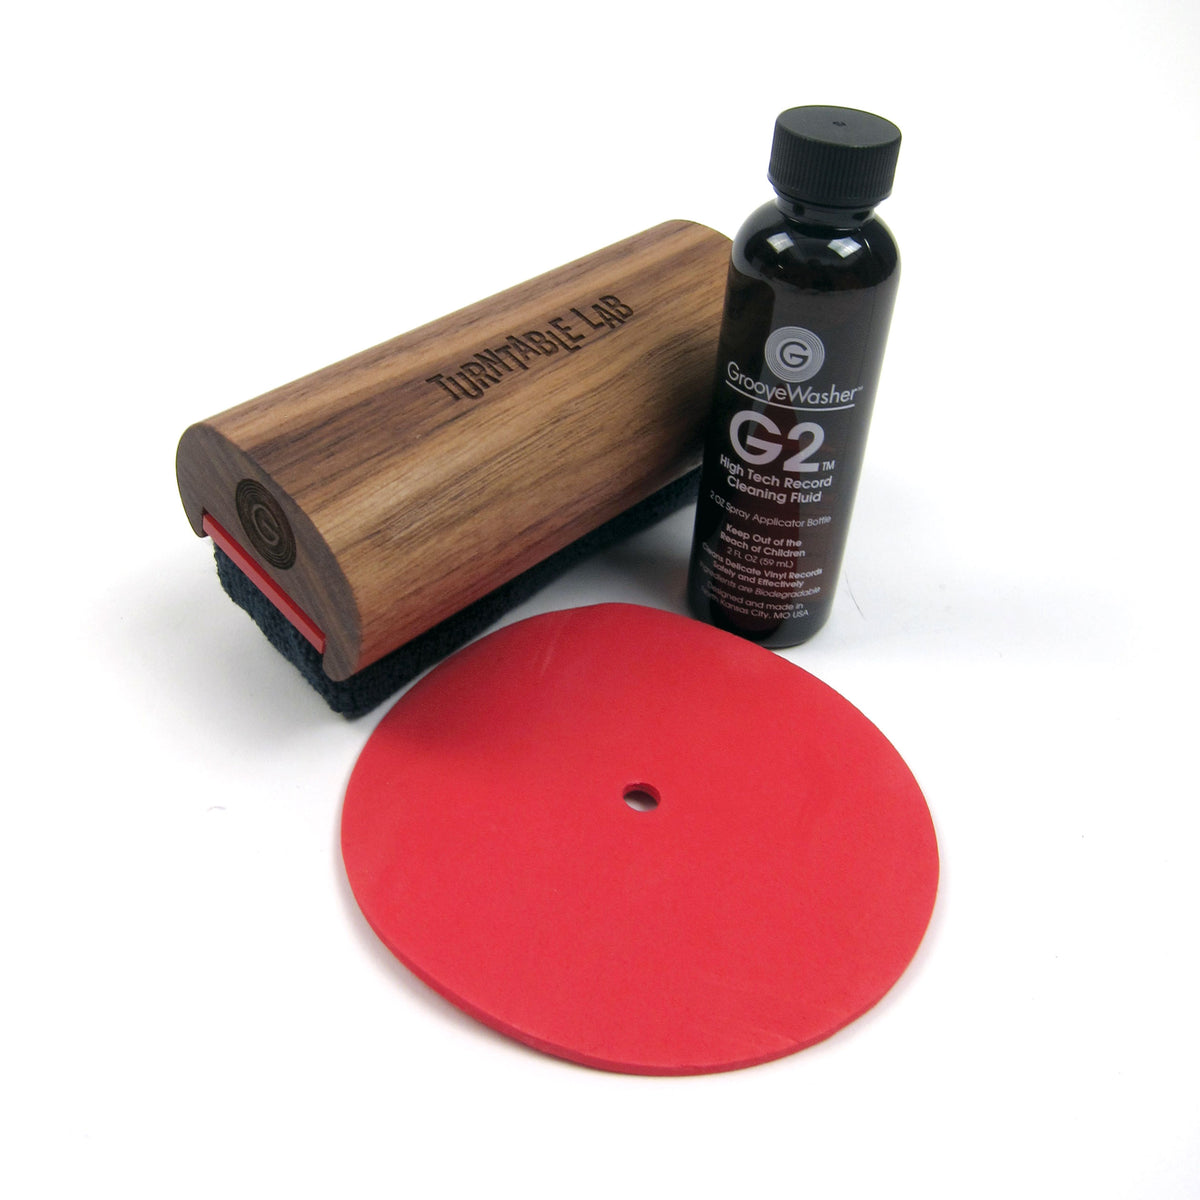 GrooveWasher: Record Cleaner Starter Kit - Turntable Lab Edition / Walnut